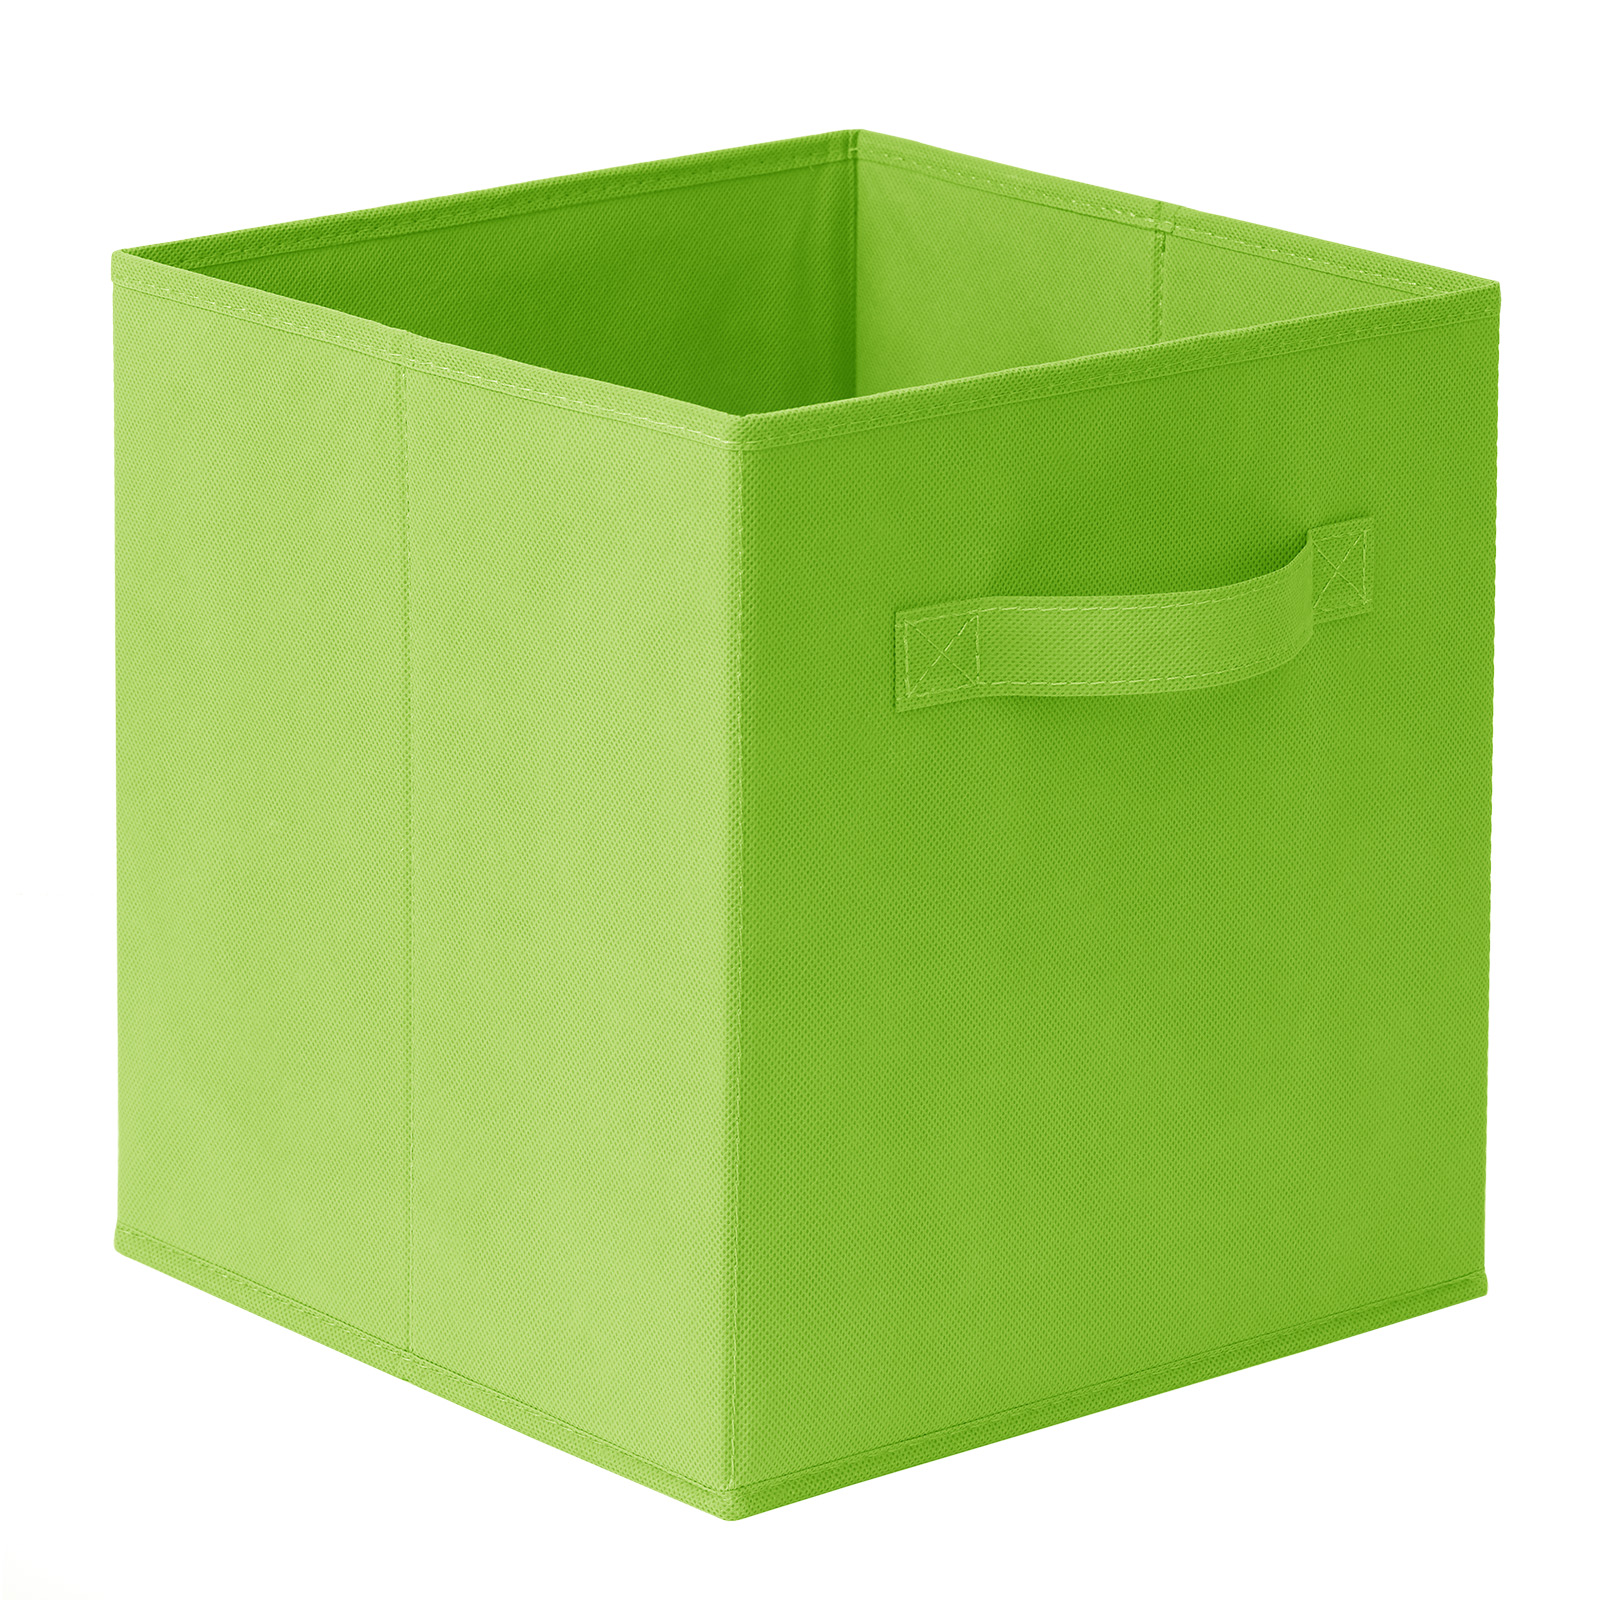 6-Collapsible-Foldable-Cloth-Fabric-Cubby-Cube-Storage-Bins-Baskets-for-Shelves thumbnail 52